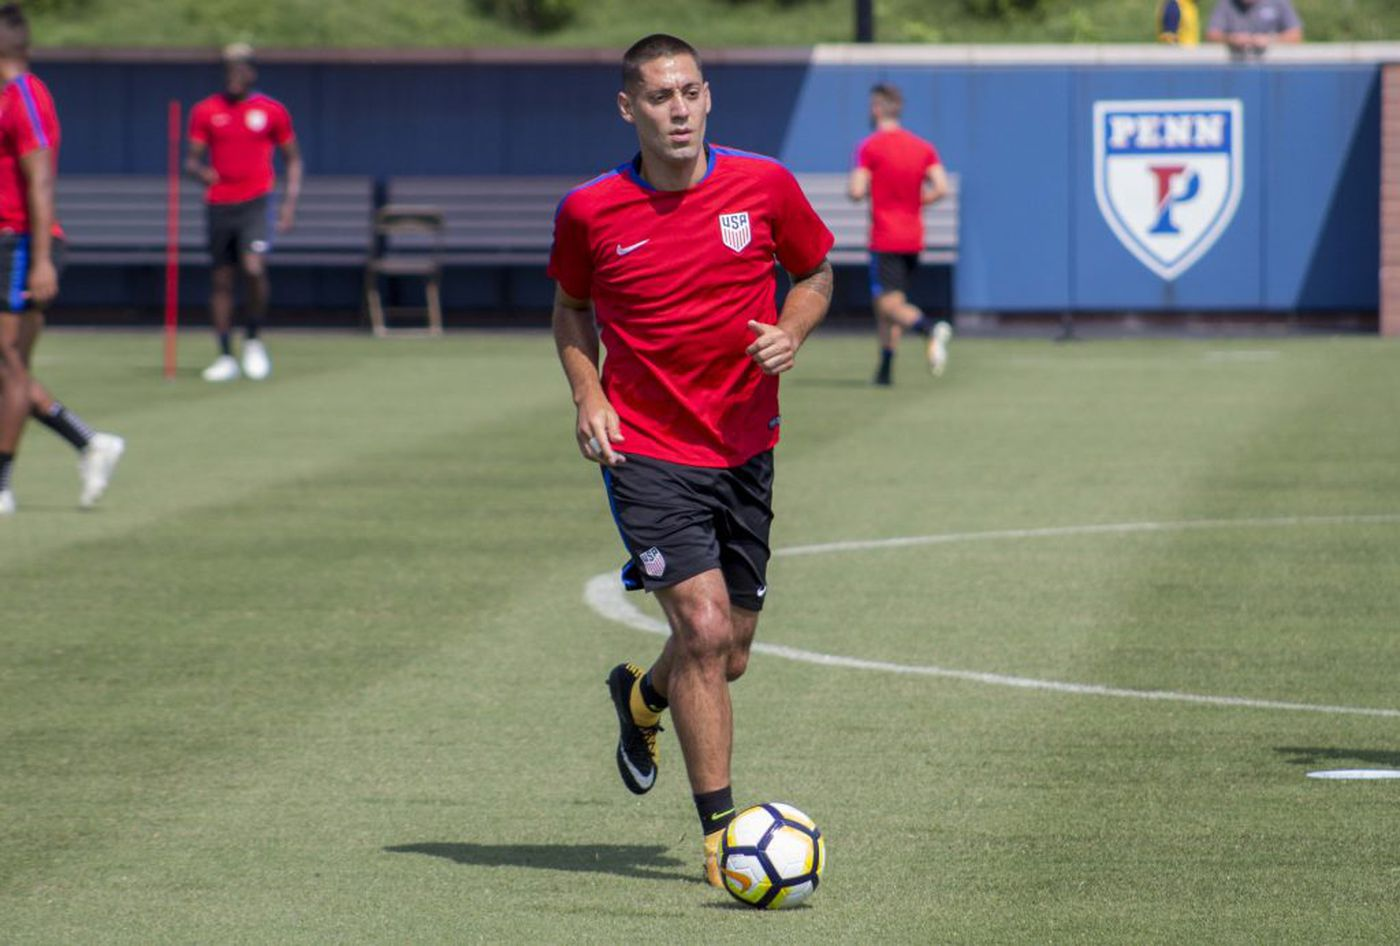 U.S. stars arrive in Philly ahead of Gold Cup quarterfinals